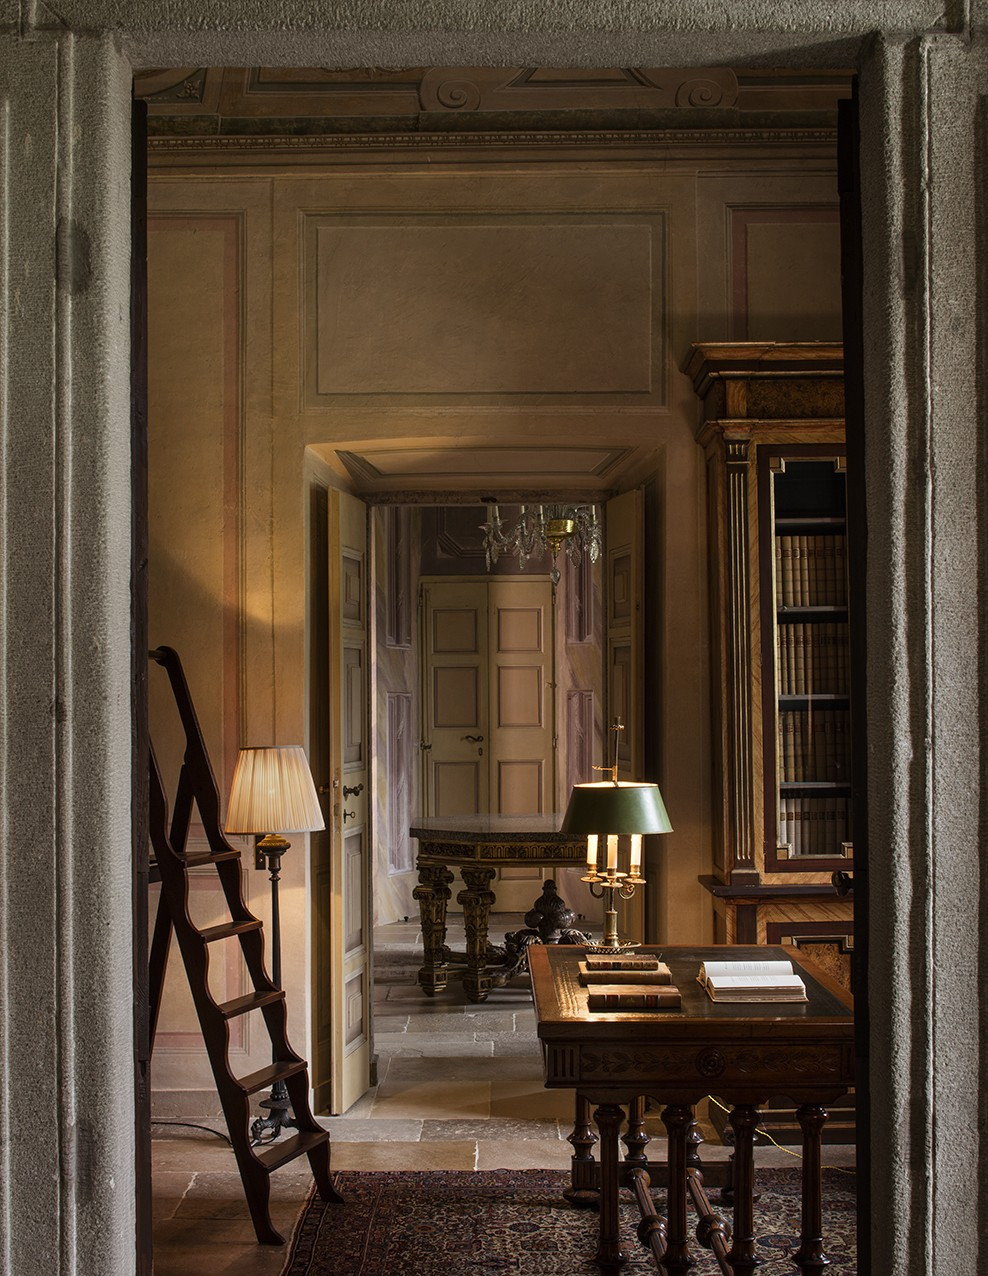 Villa Balbiano elegant private house available for rental on lake Como with illustrious history Sala del Durini named after cardinal Angelo Maria Durini elegant library room best exclusive service